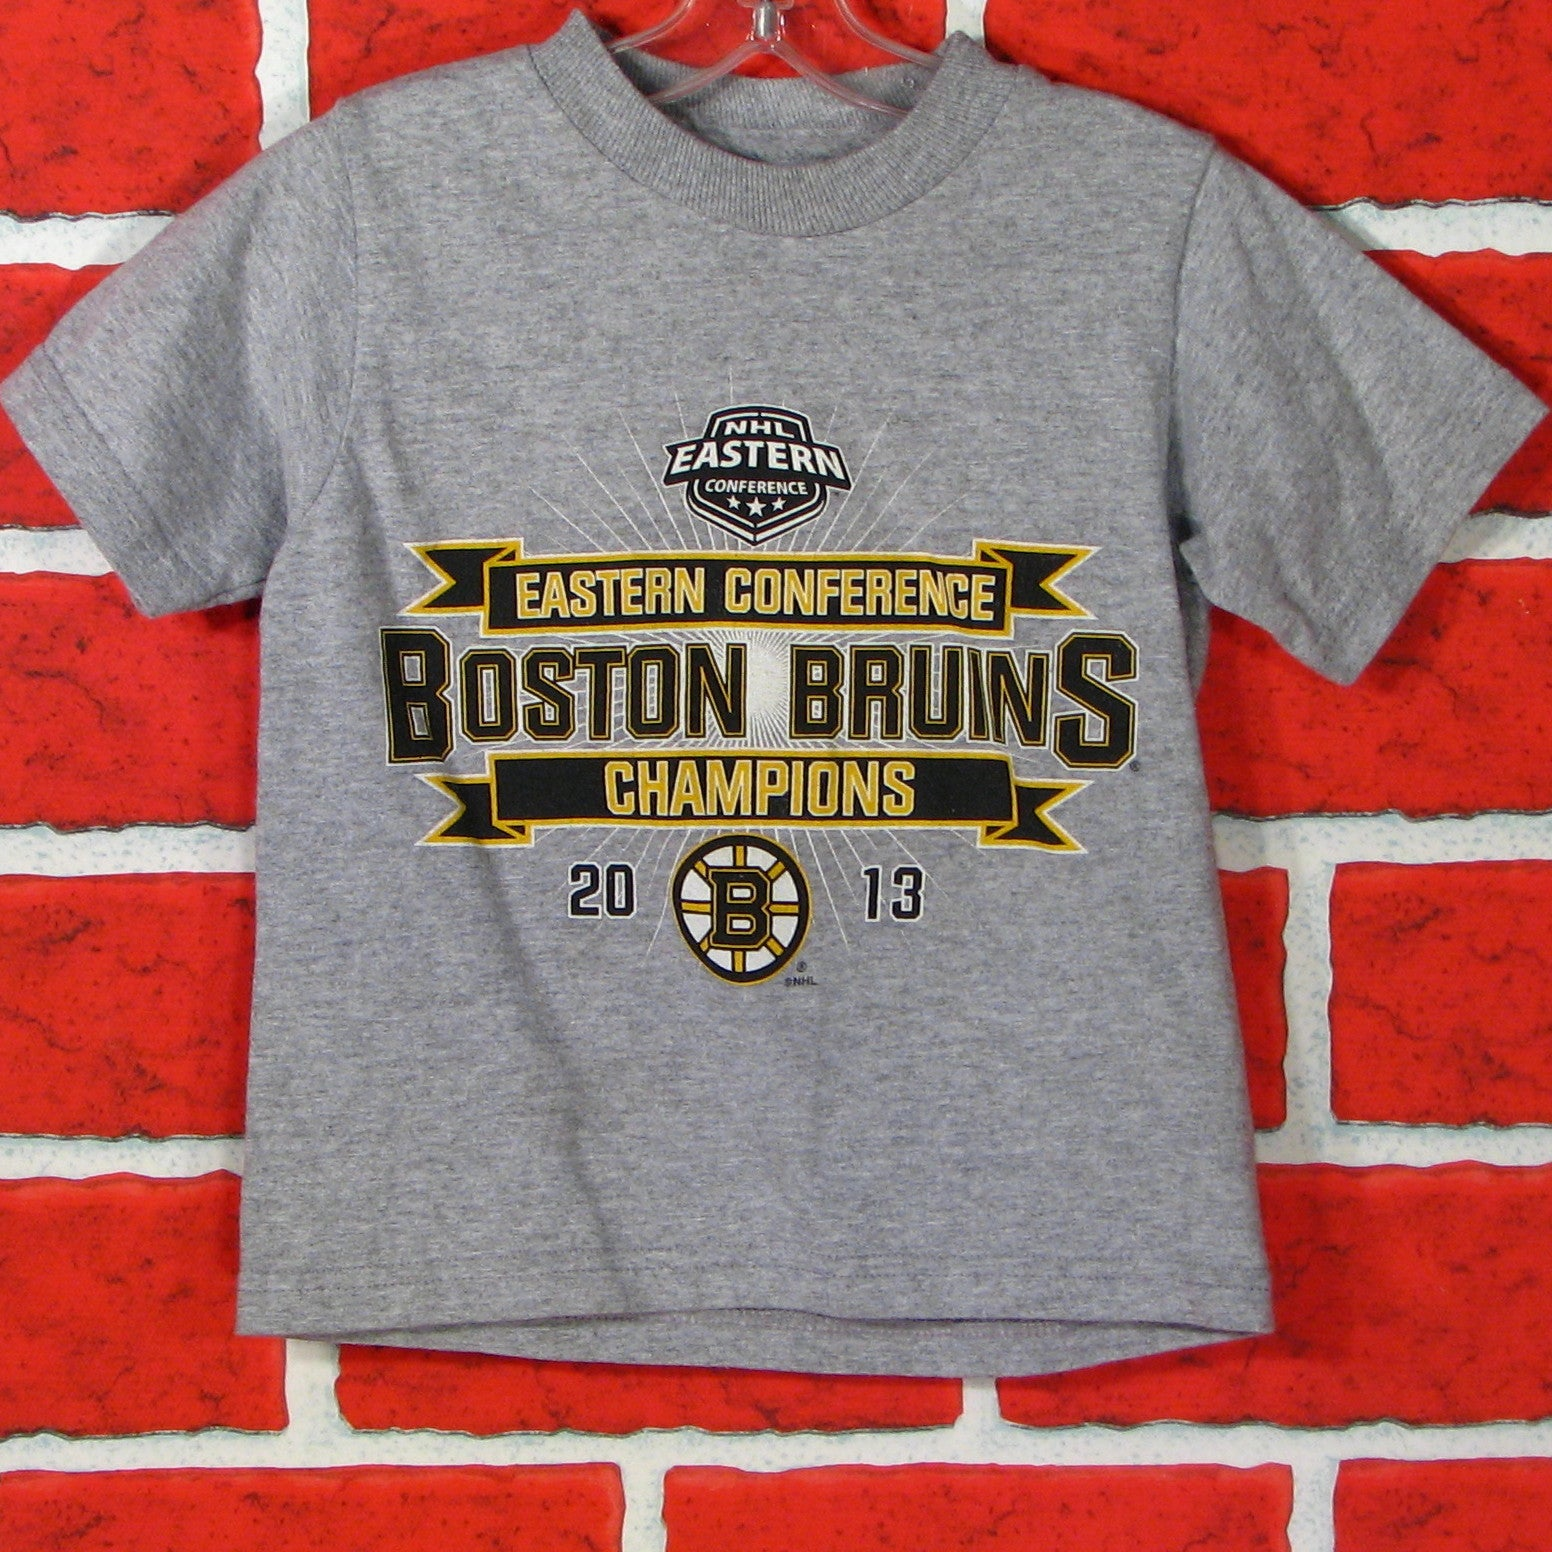 Boston Bruins 2013 Eastern Conference Champions T-Shirt Toddler